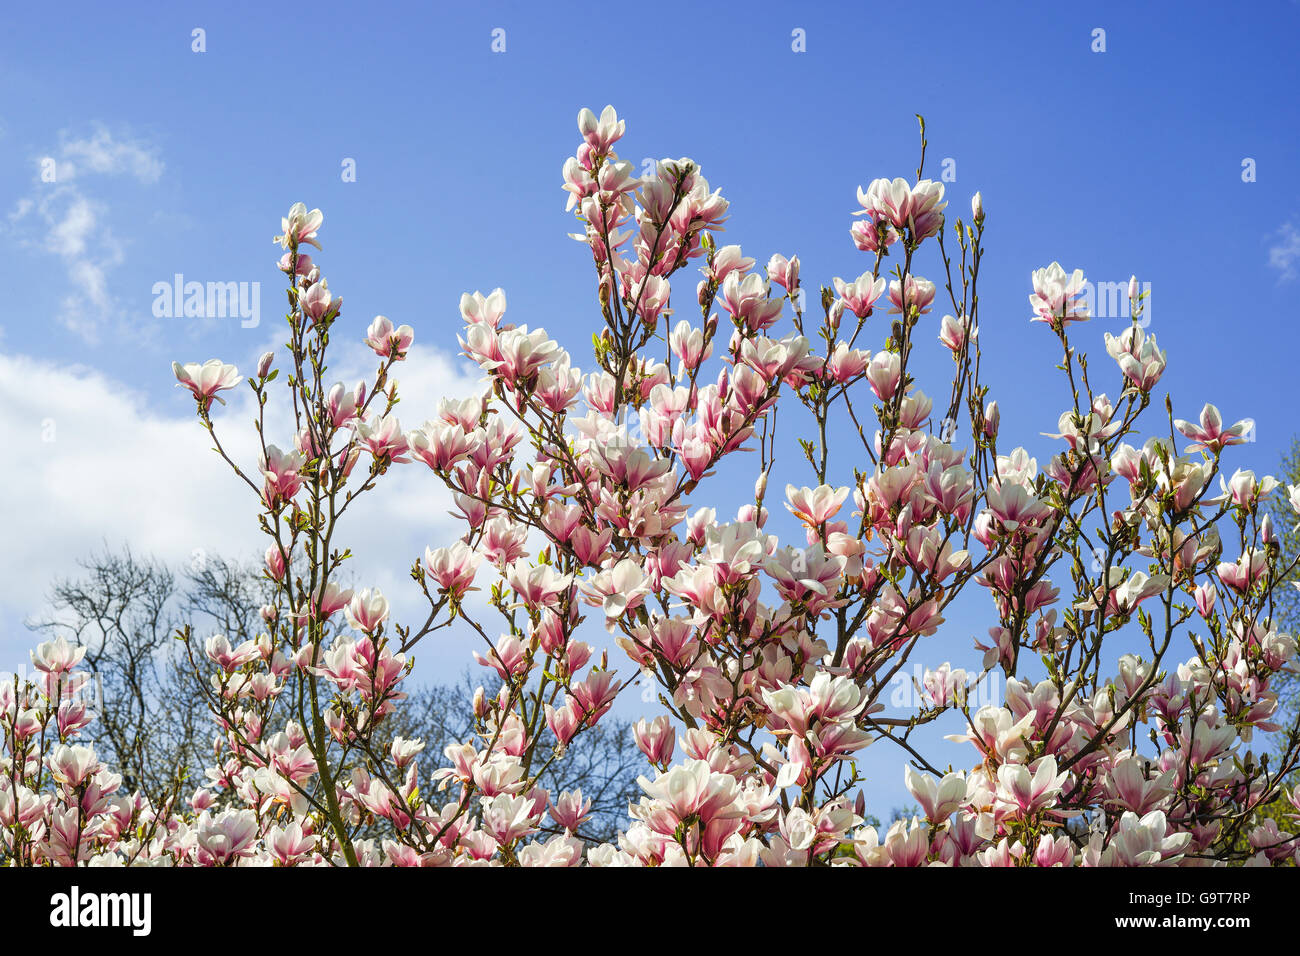 Magnolia blossom in front of blue and cloudy spring sky - Stock Image